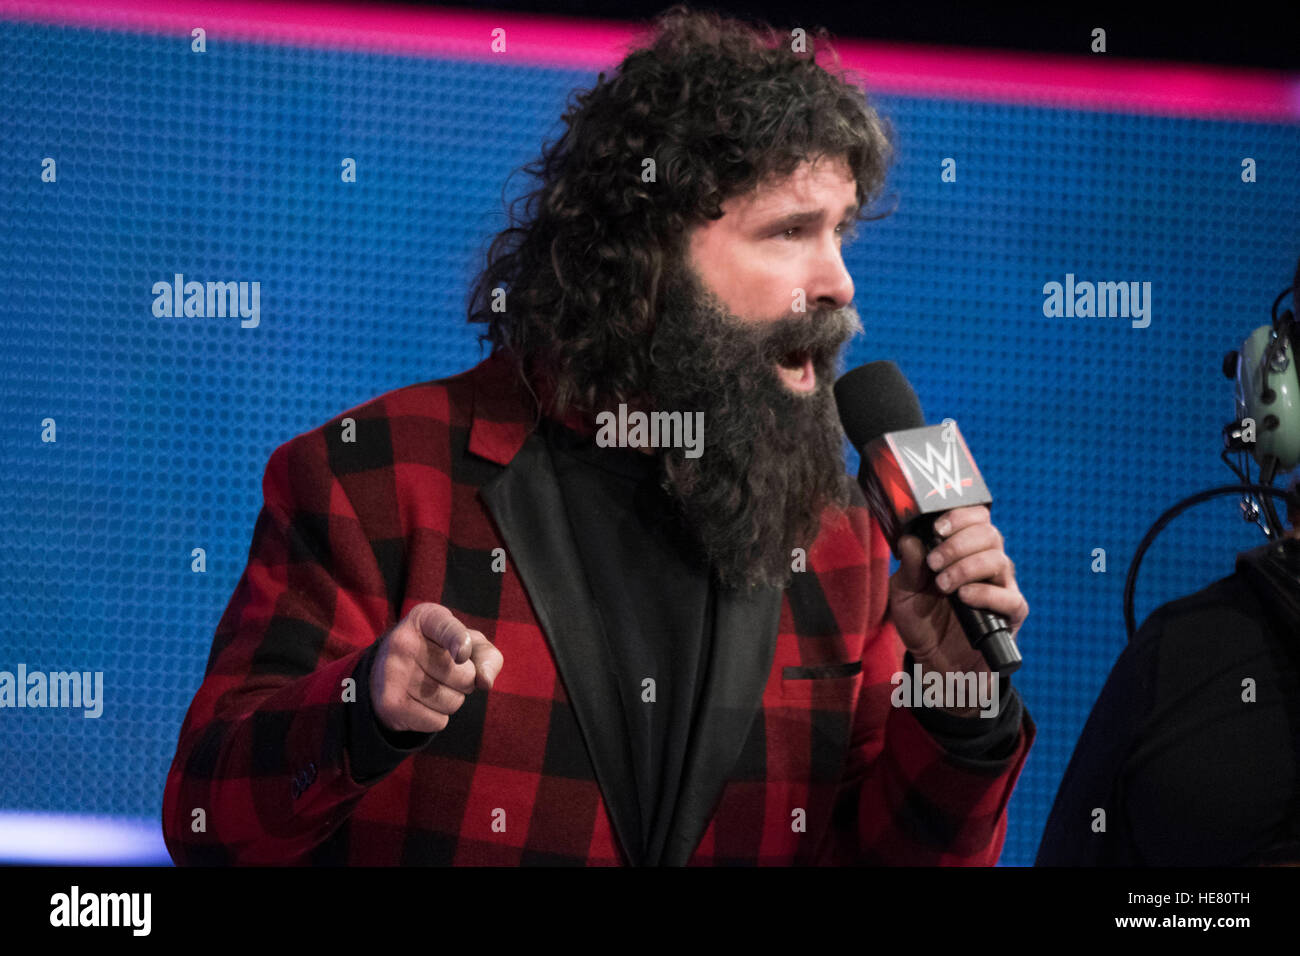 WWE wrestler Mick Foley at the 14th Annual Tribute to the Troops Event wrestling match at the Verizon Center December - Stock Image